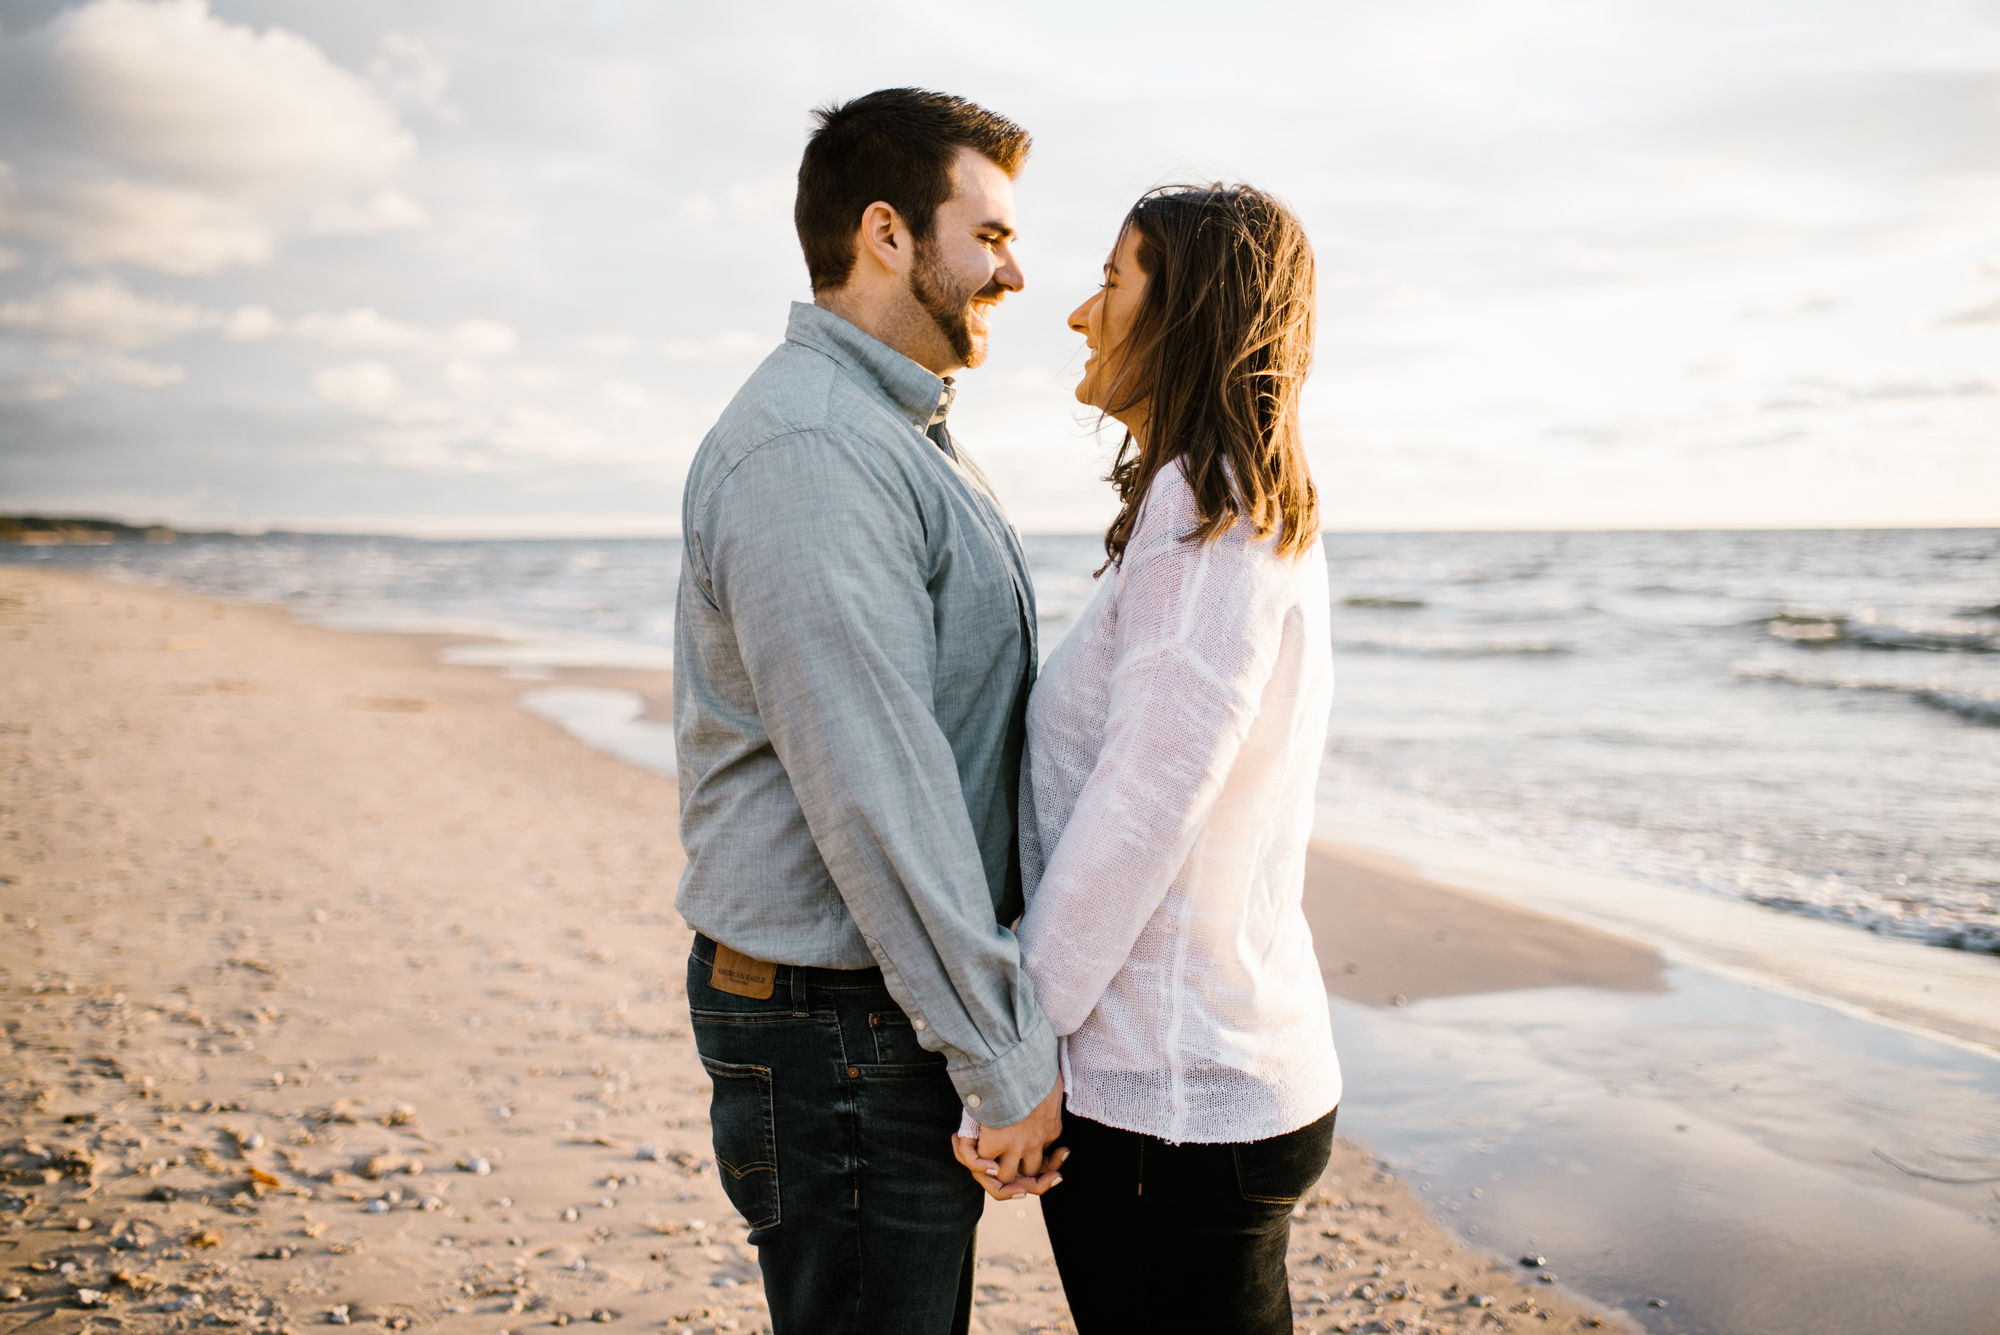 grand-haven-michigan-engagement-photographer-sydney-marie (86).jpg